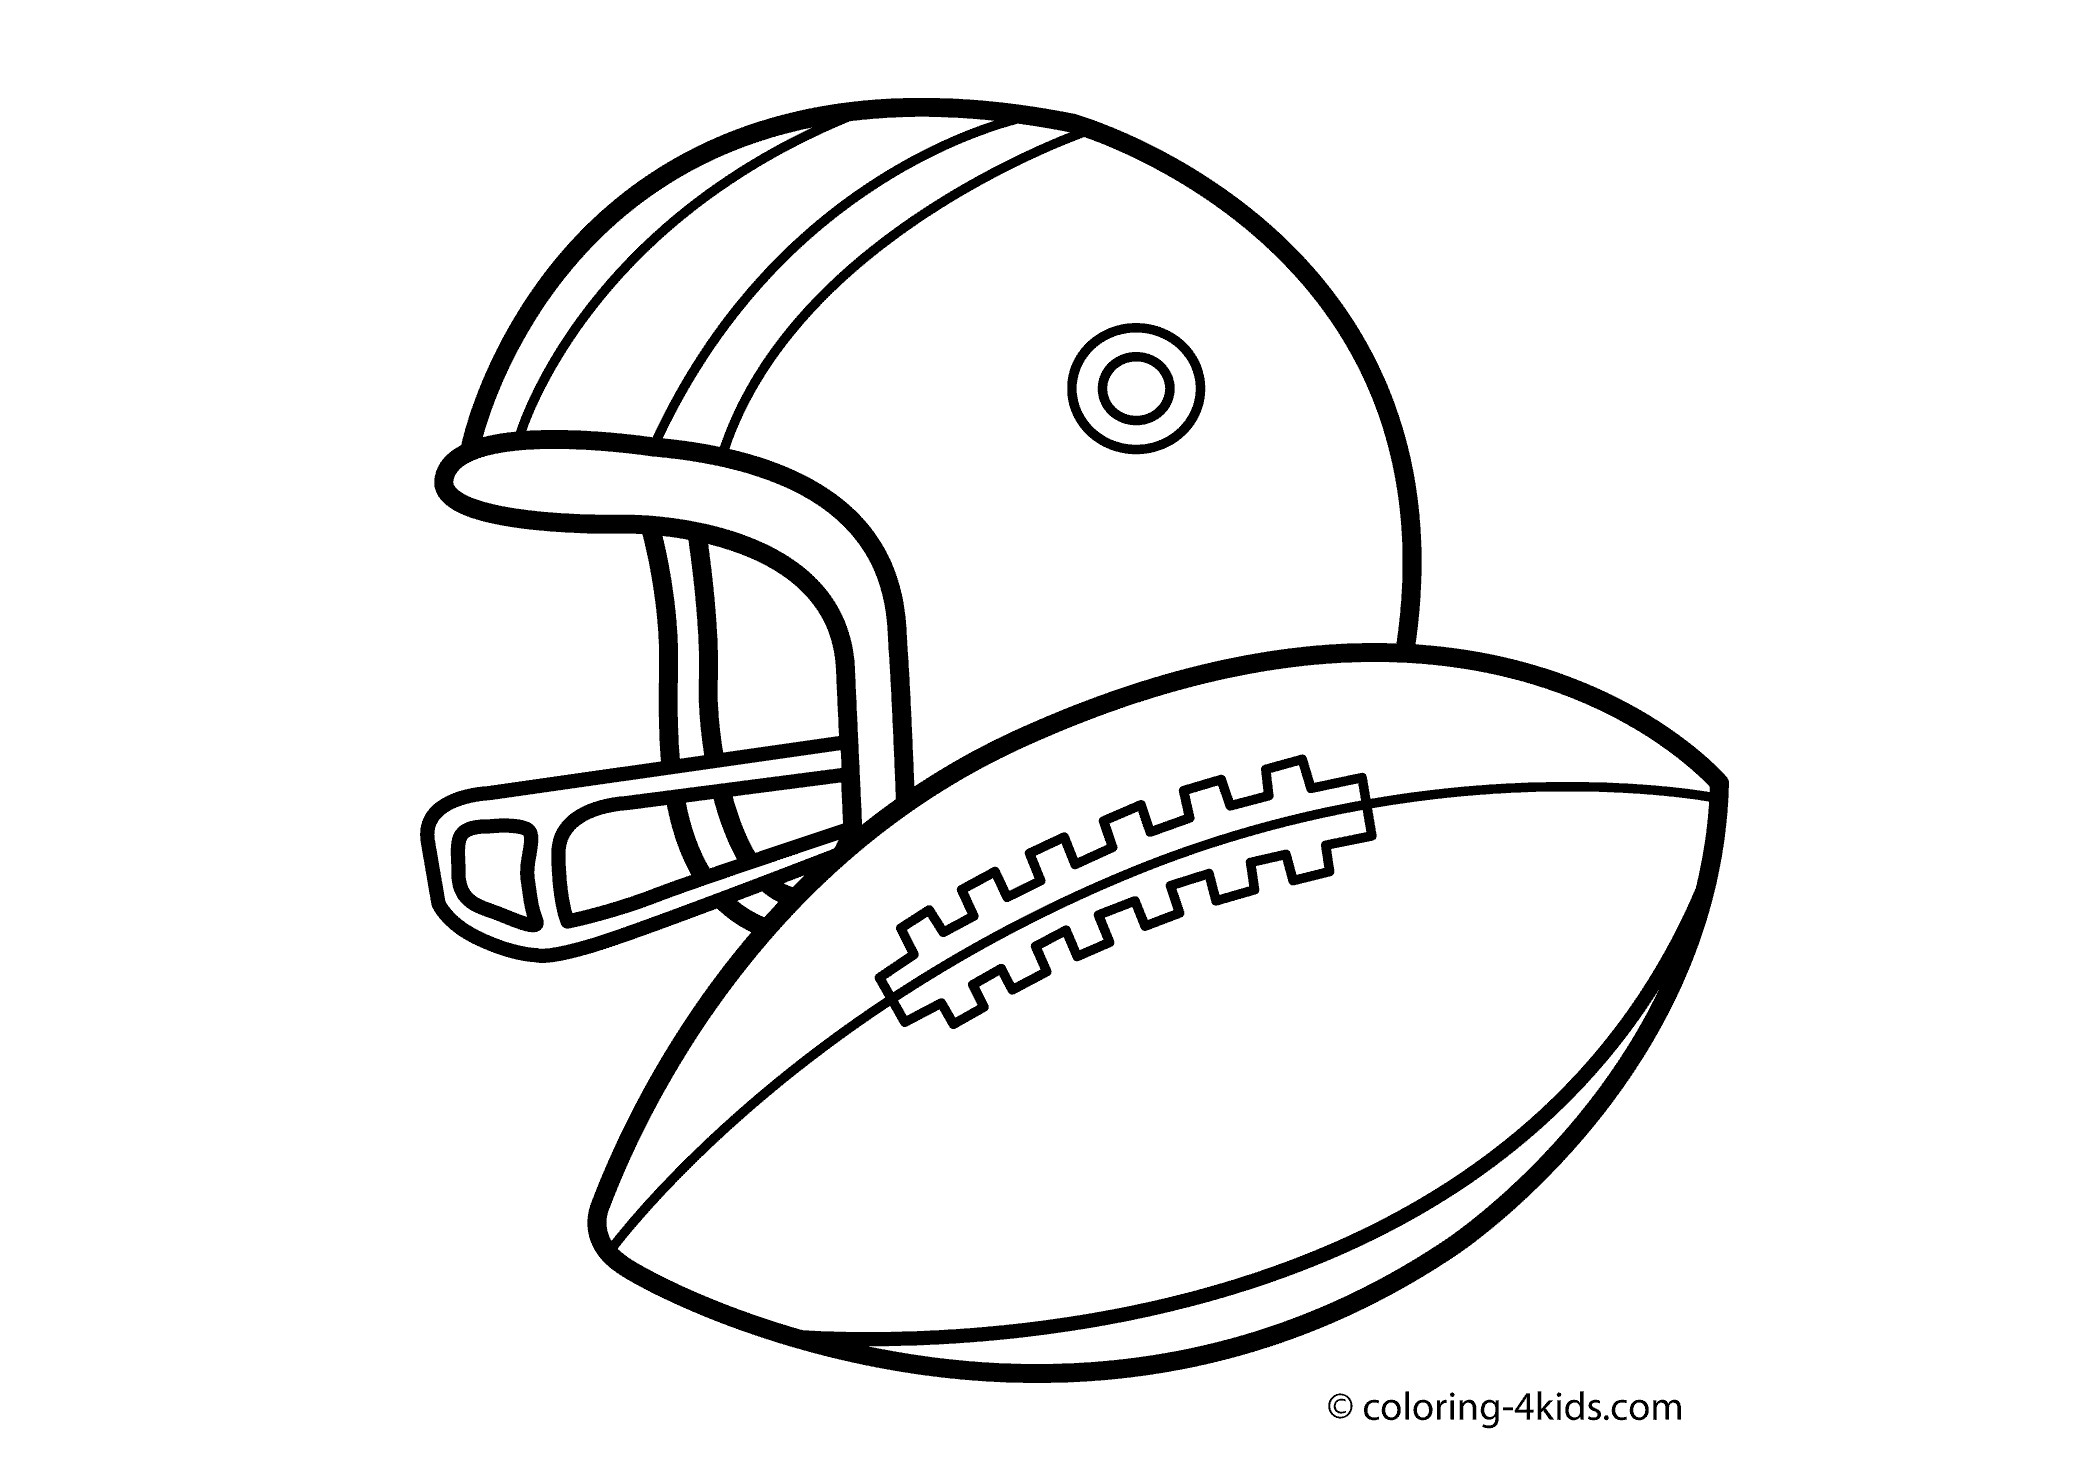 2079x1483 New Coloring Pages Of Underdog New Beautiful Printable Football